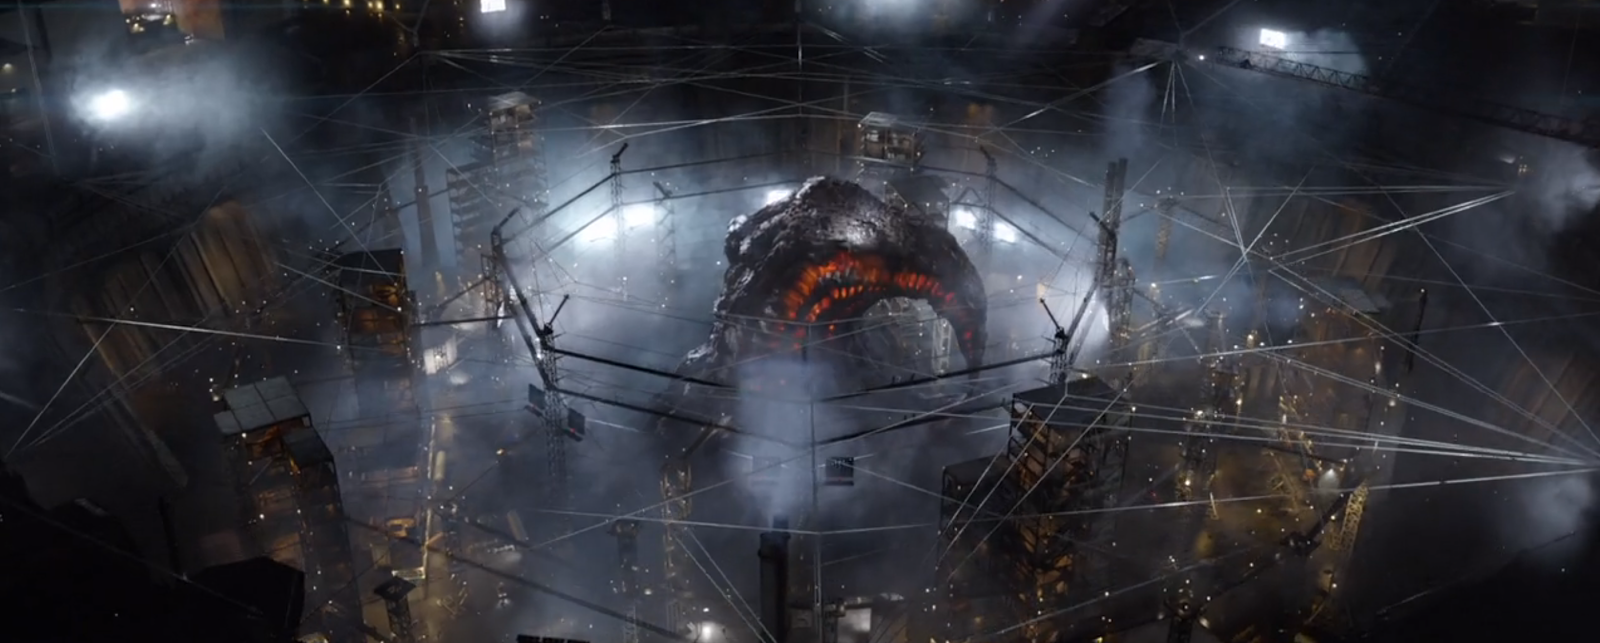 Video Godzilla 2014 New Movie Gambar Godzilla vs Muto